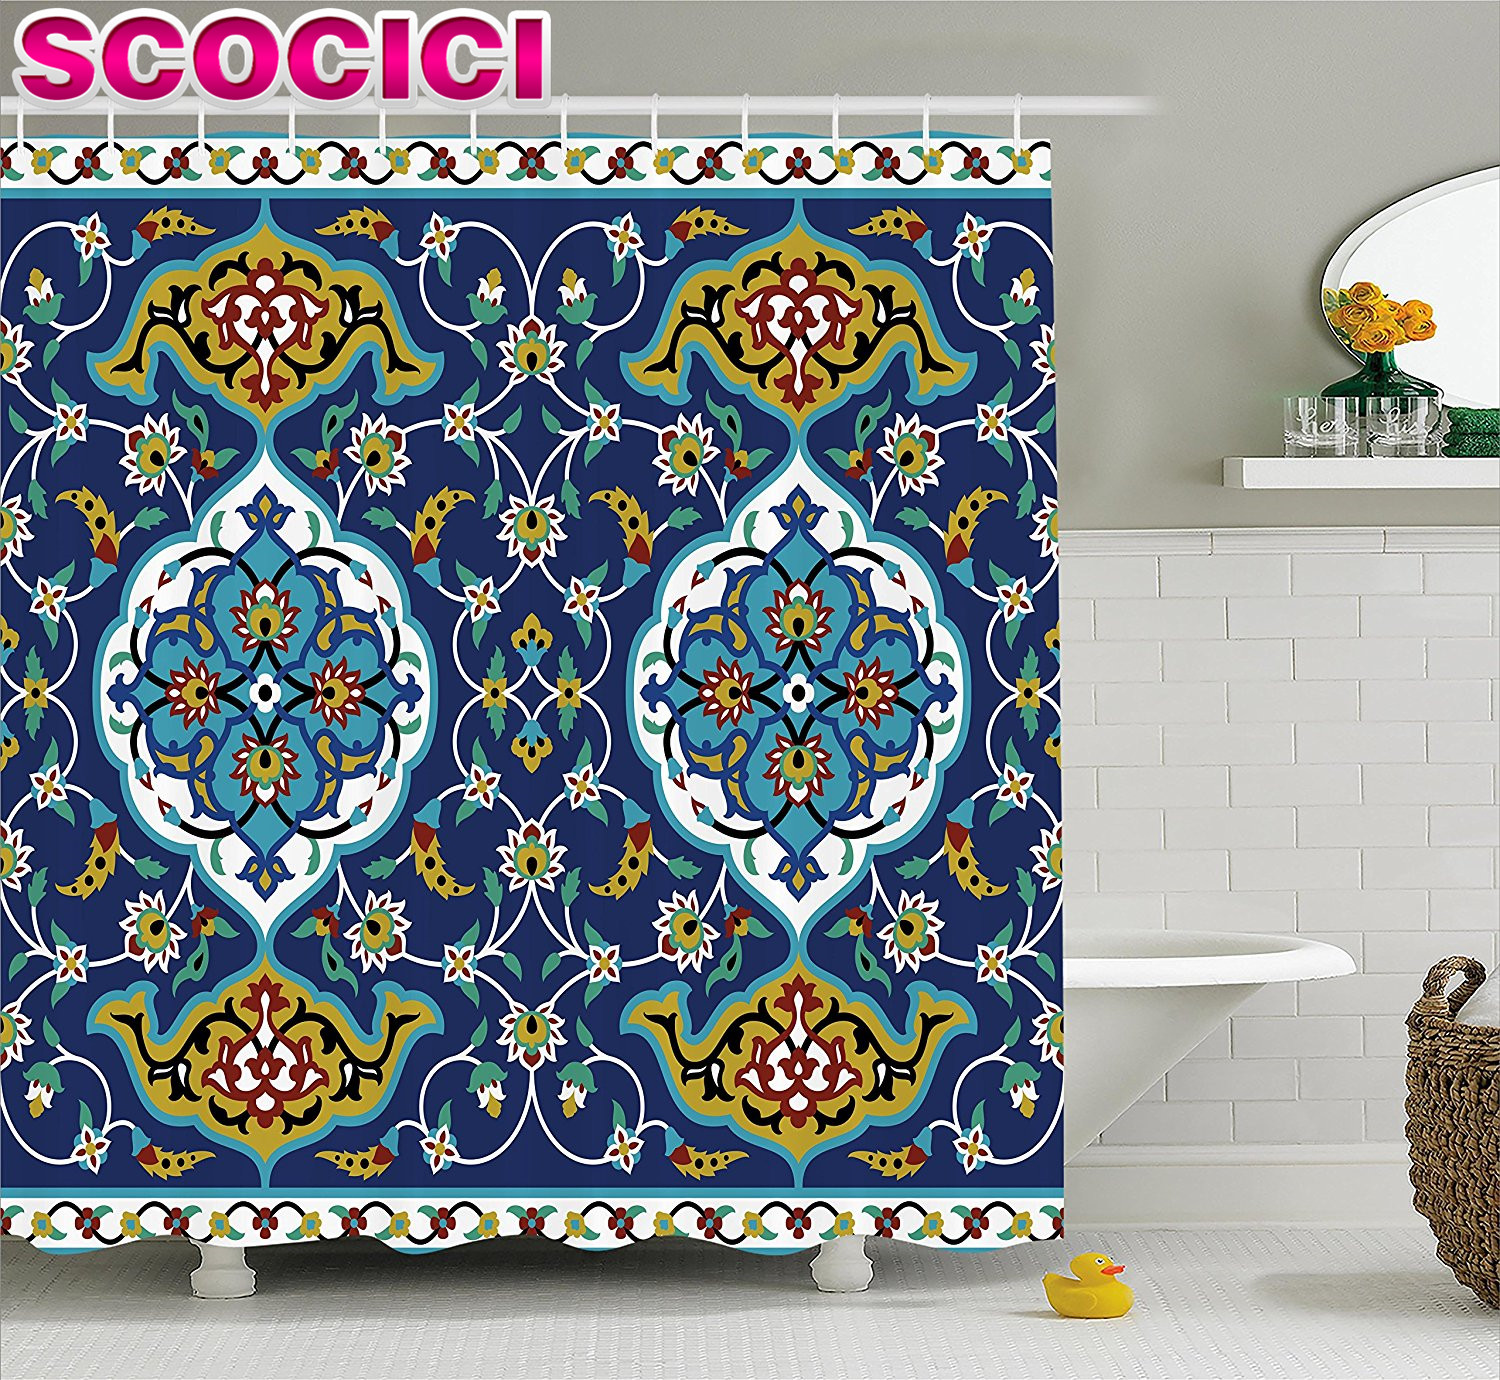 Moroccan Shower Curtain Authentic Oriental Motif With Vintage Byzantine  Style Tile Effects Artwork Fabric Bathroom Decor